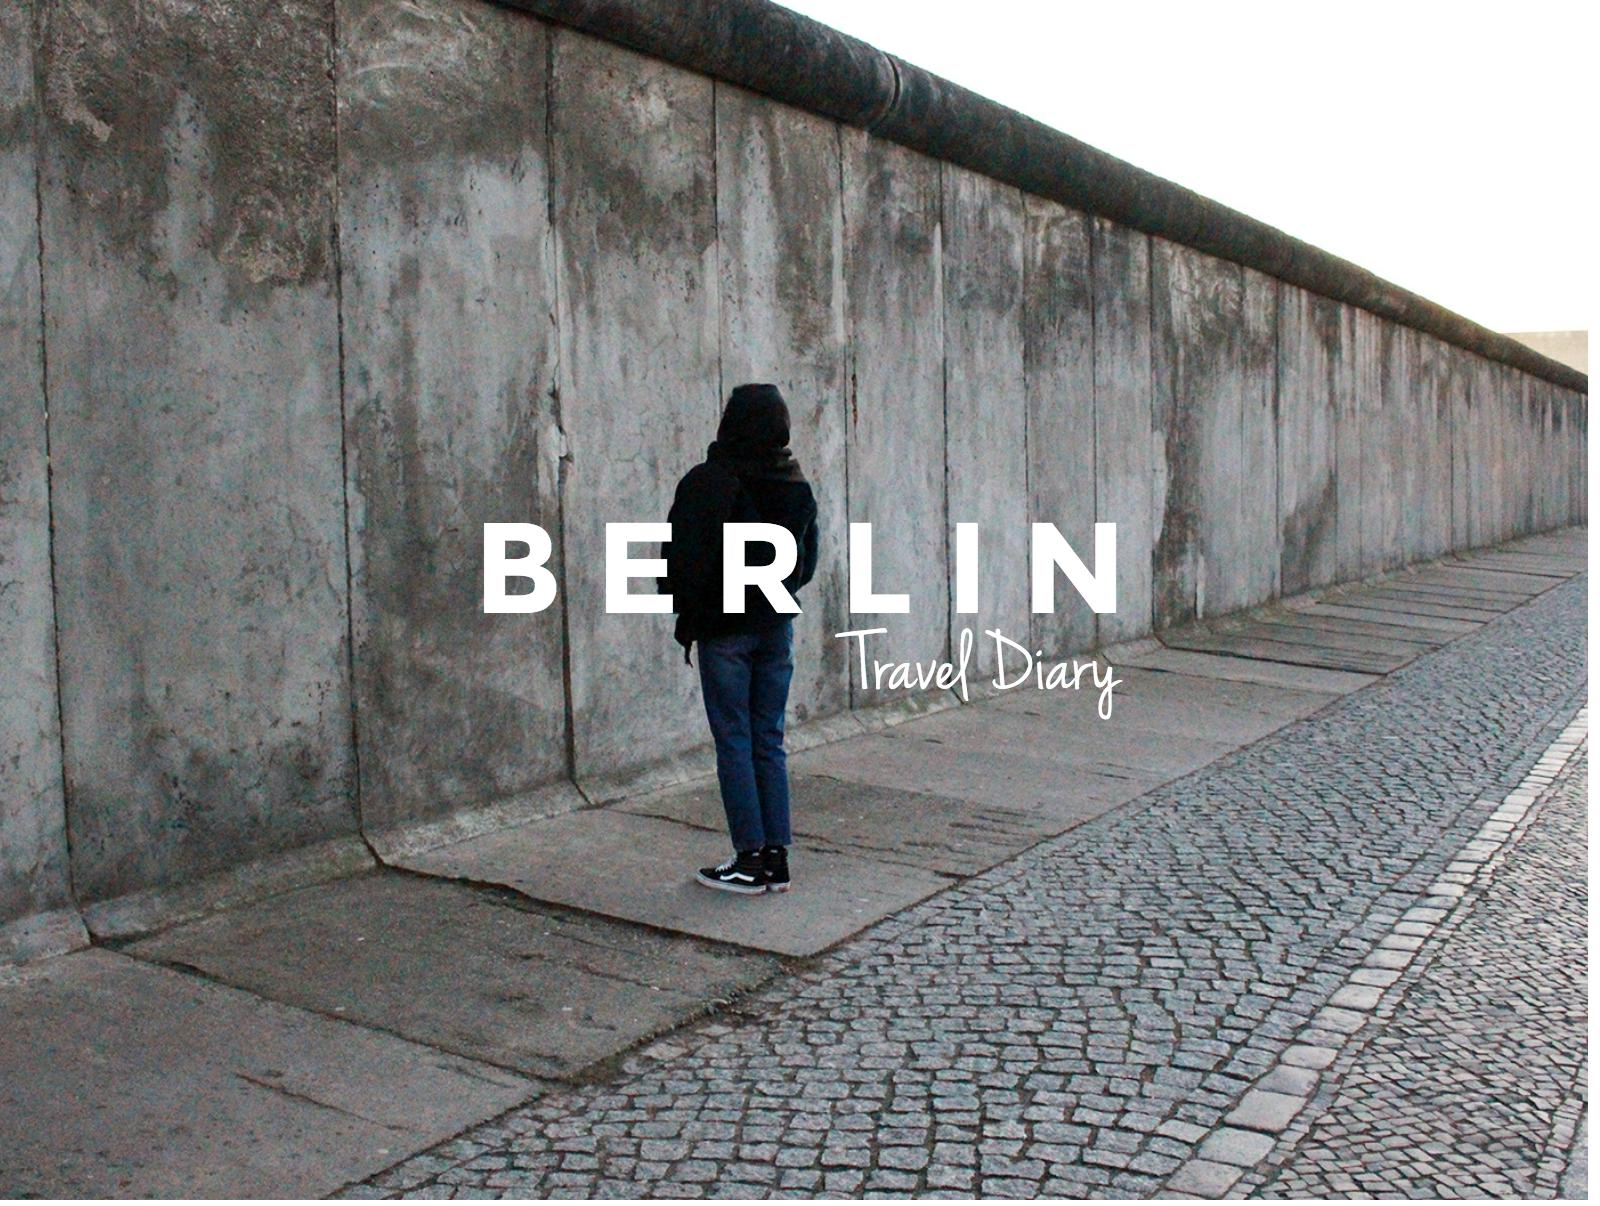 berlin-travel-diary